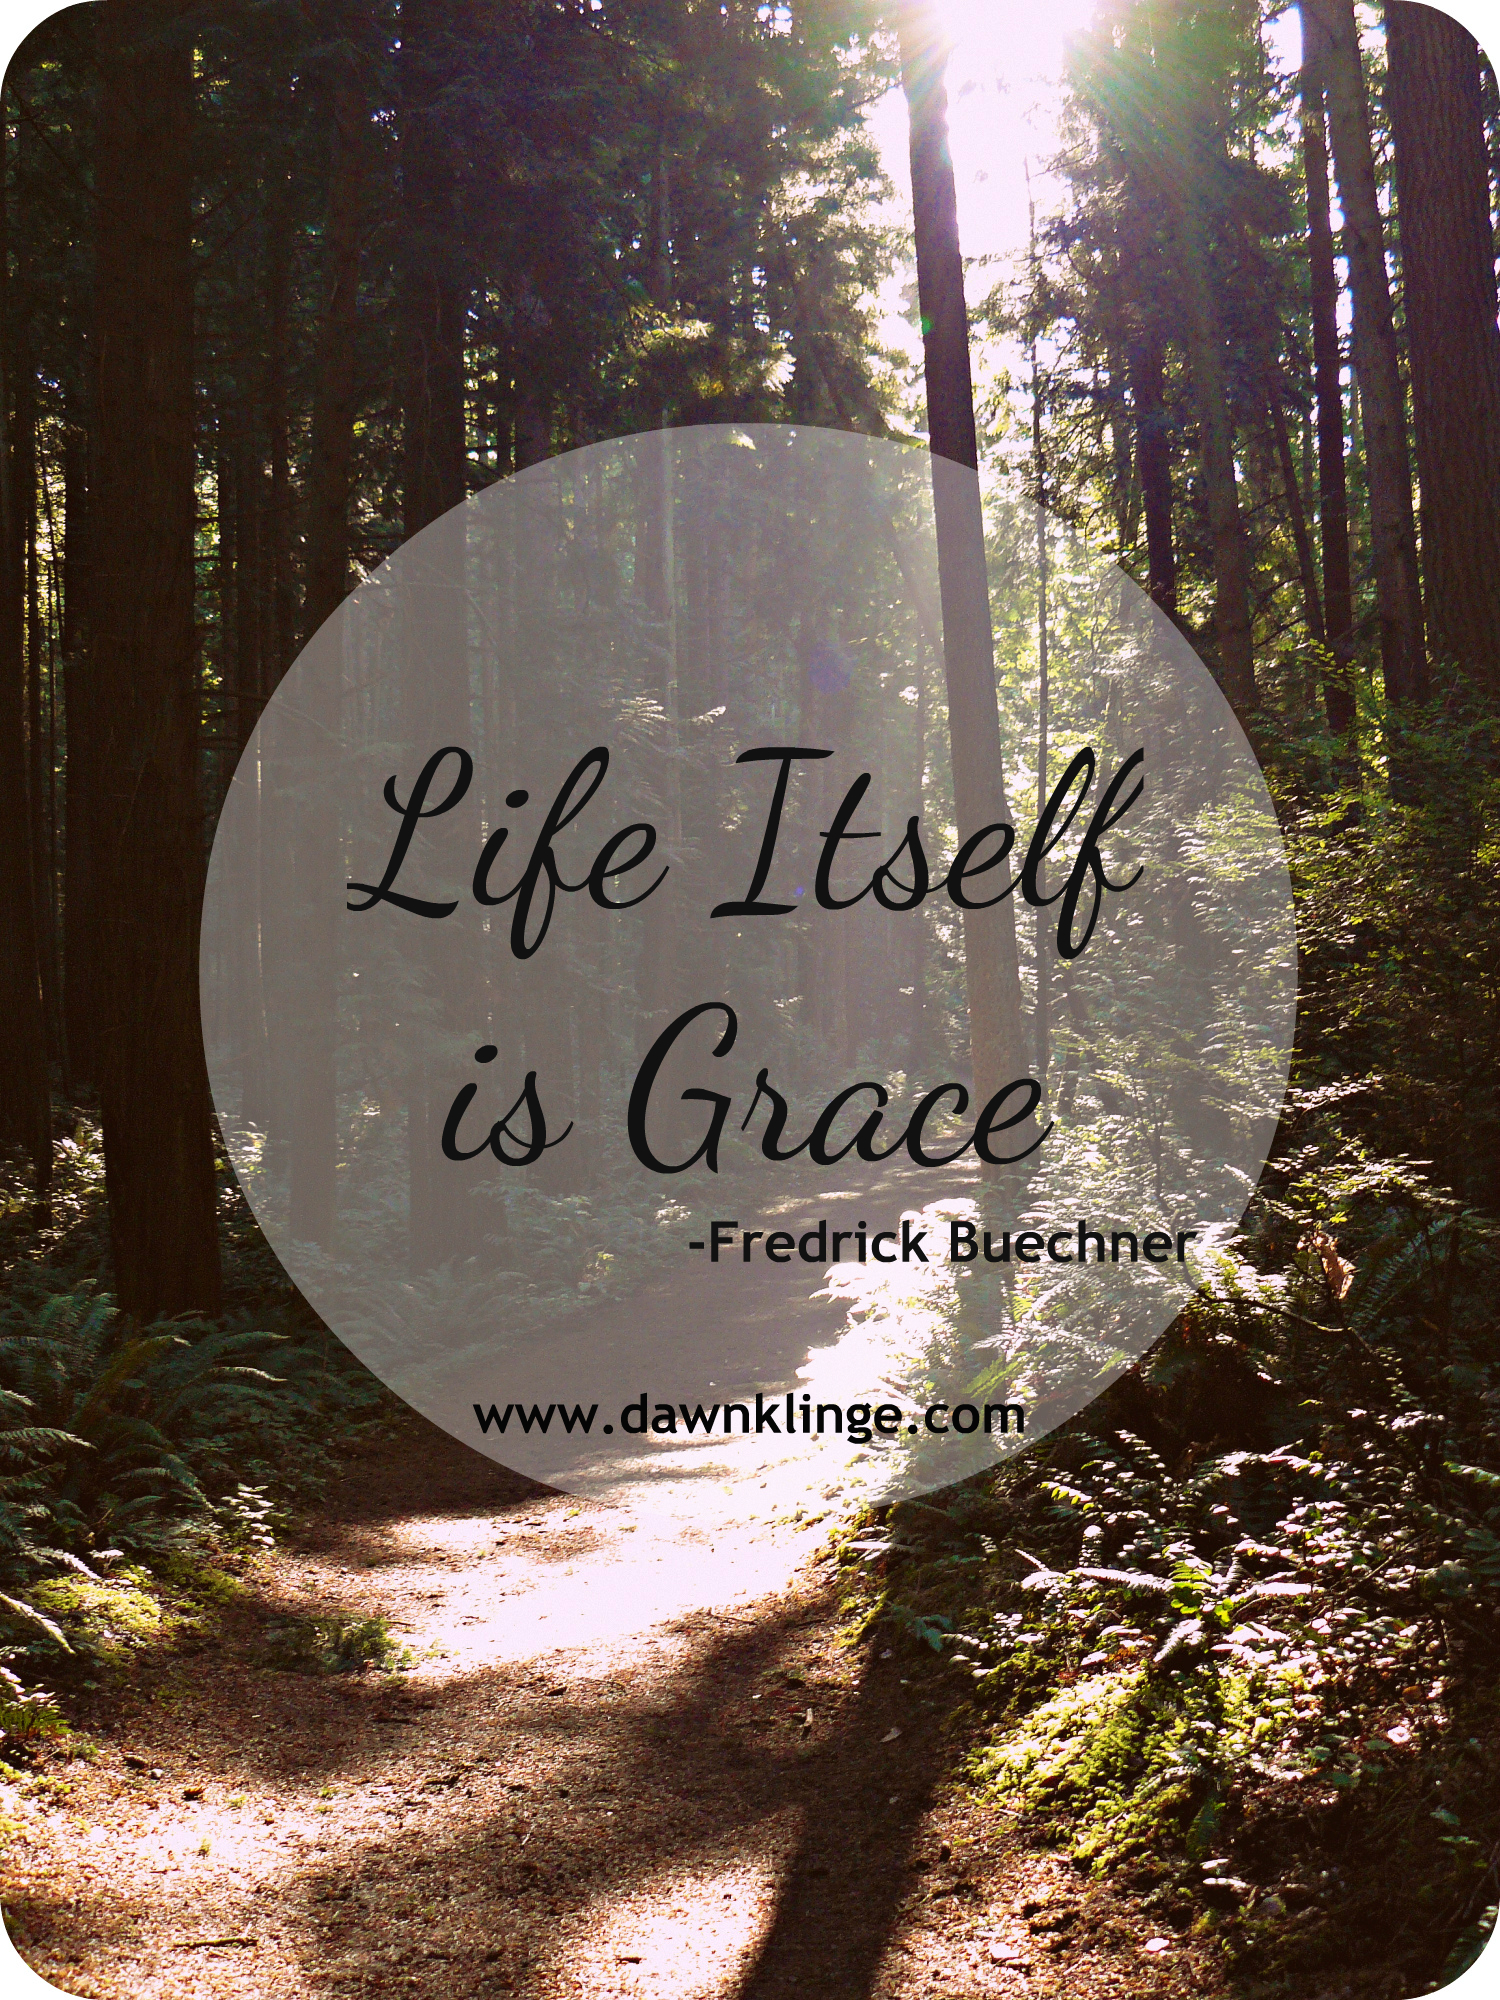 life itself is grace | frederick buechner | christian living | what is grace | Above the Waves || #fredrickbuechner